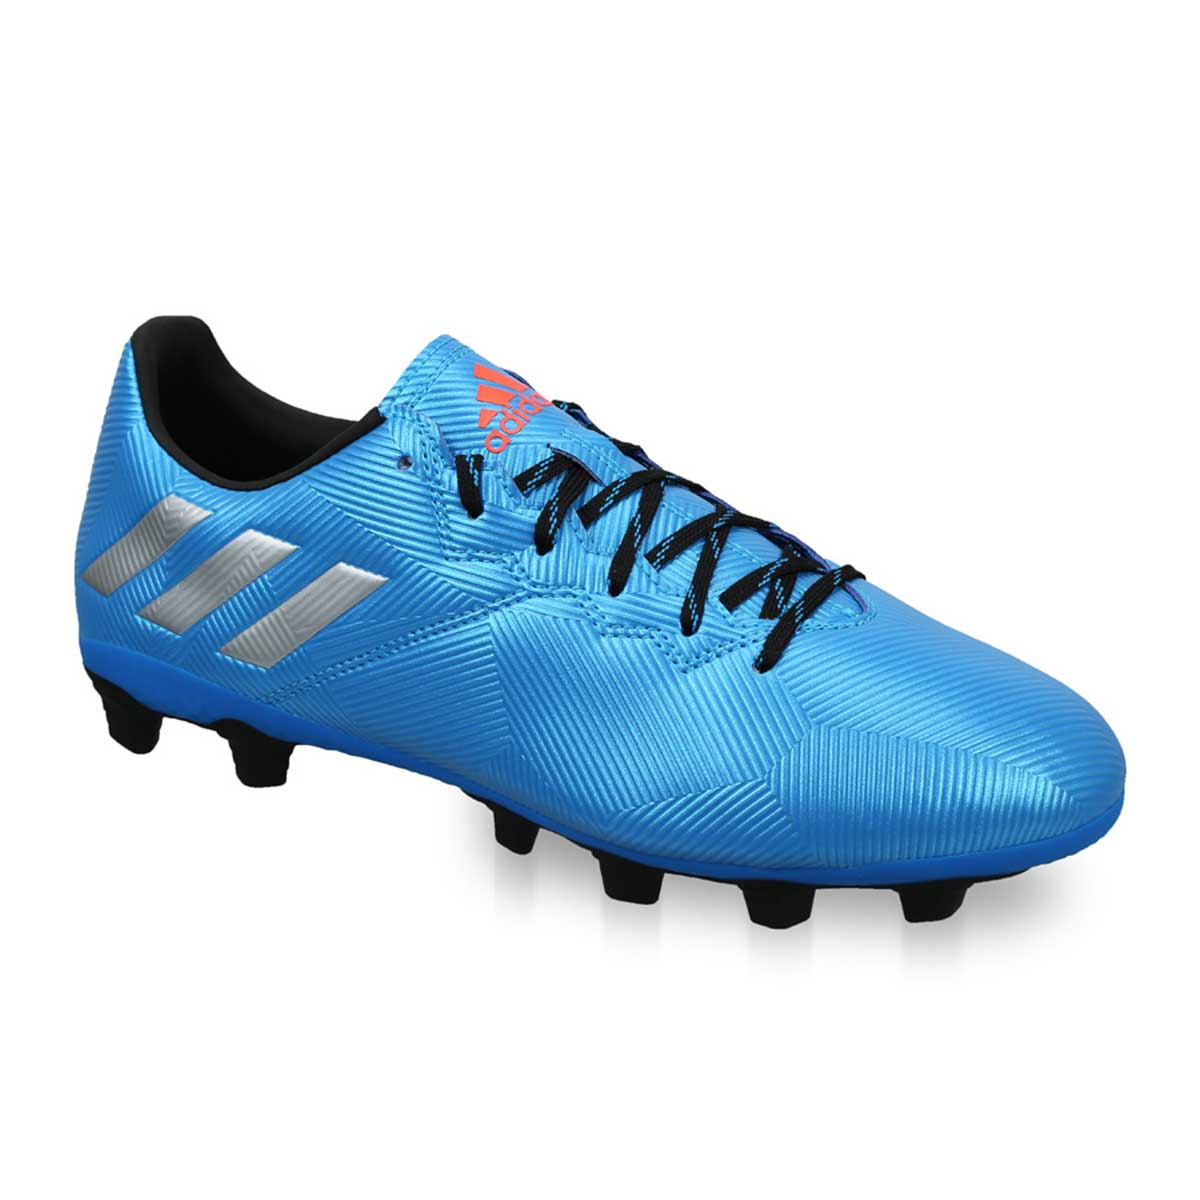 Buy Adidas Messi 16.4 FXG Football Shoes (Blue Silver Black) Online 77c3f0876d1